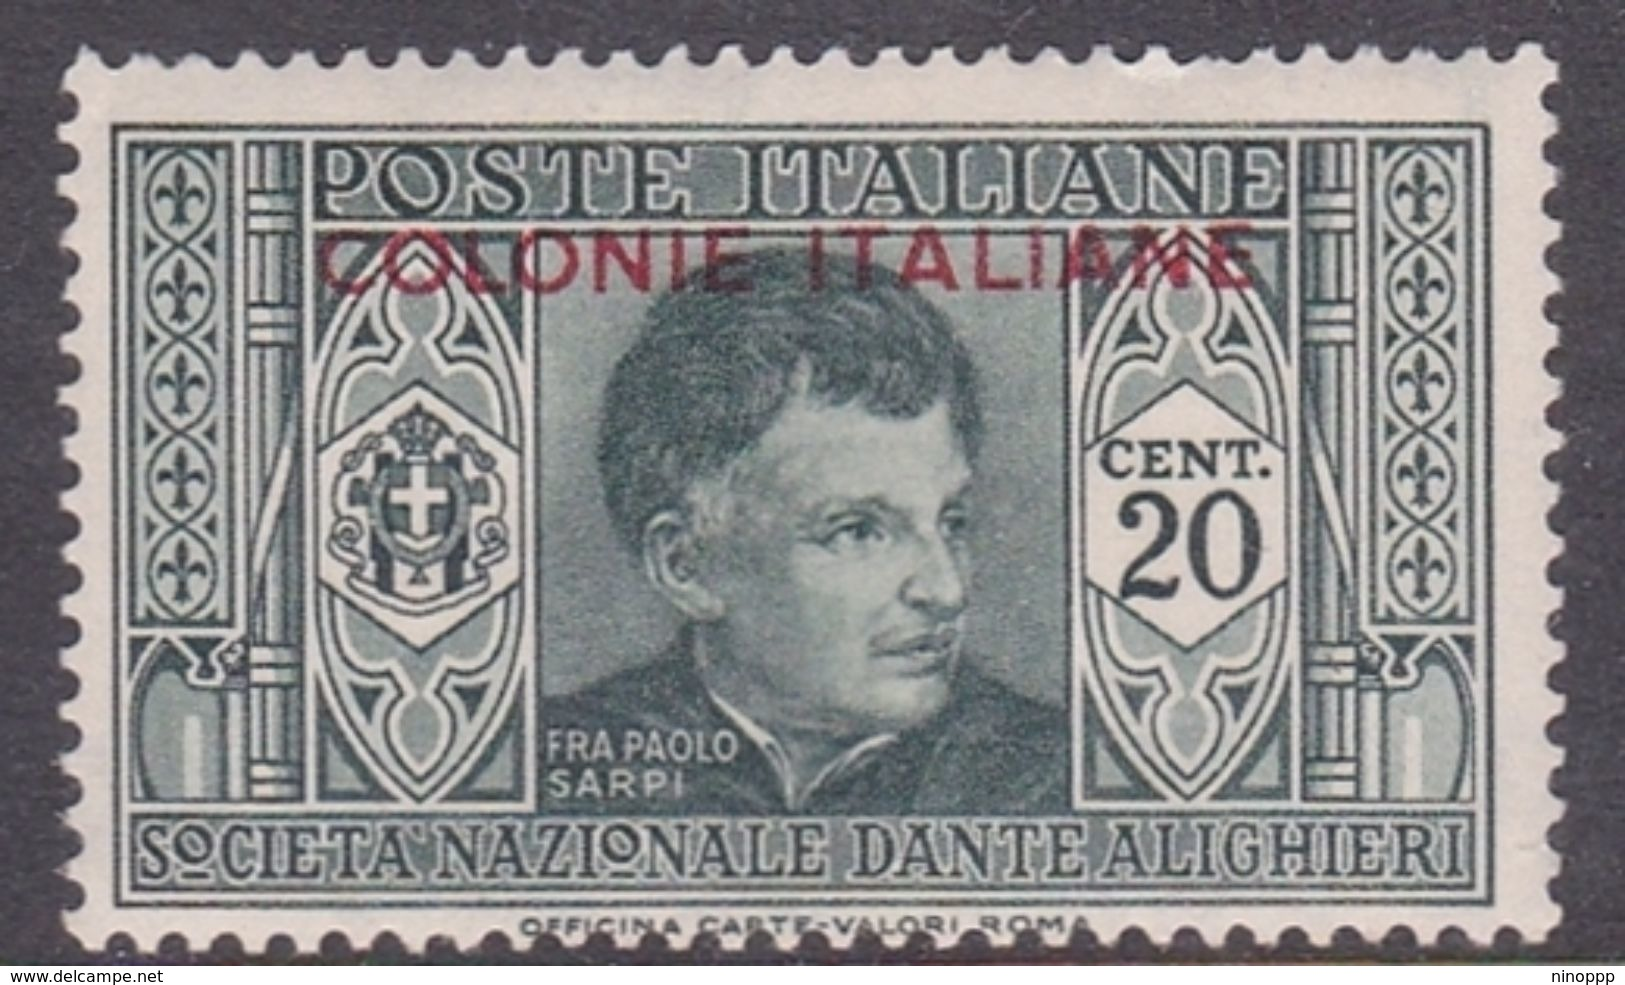 Italy-Colonies And Territories-General Issue S13 1932 Dante Alighieri 20c Green MH - Italy